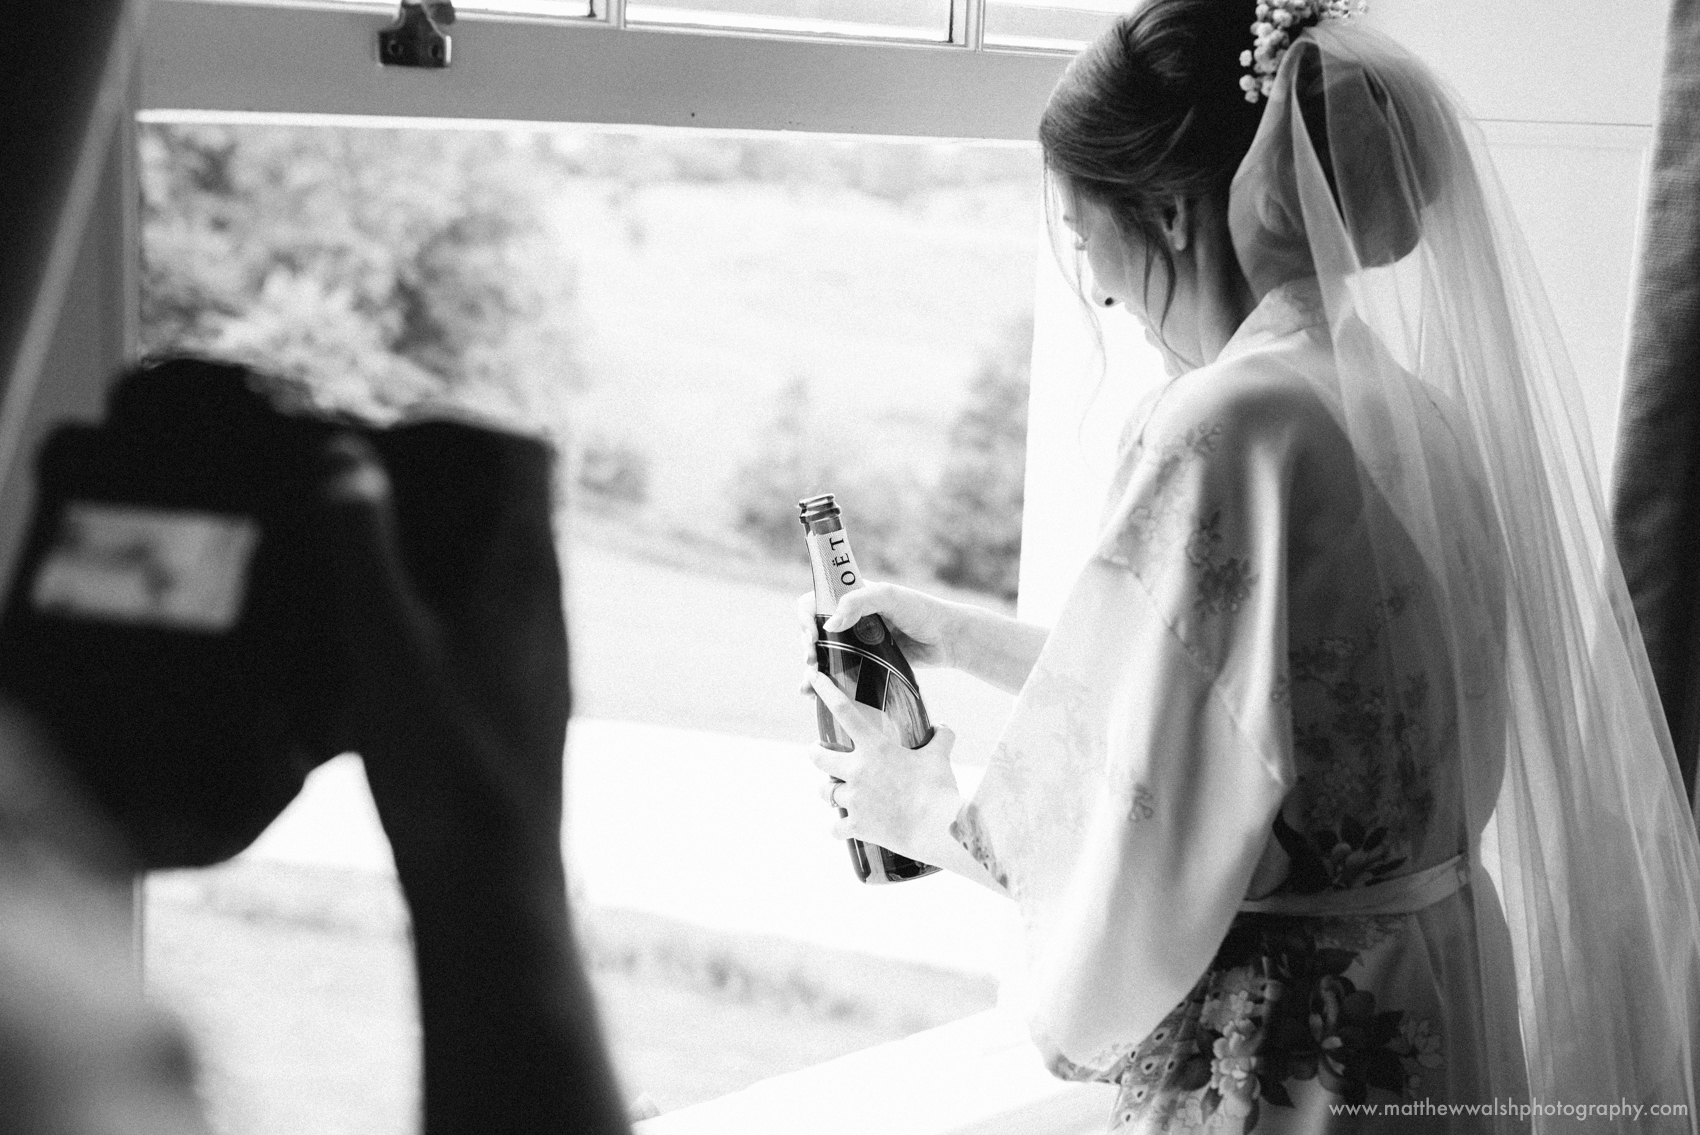 The bride opens a bottle of Champagne to be traditionally shared with her bridesmaids